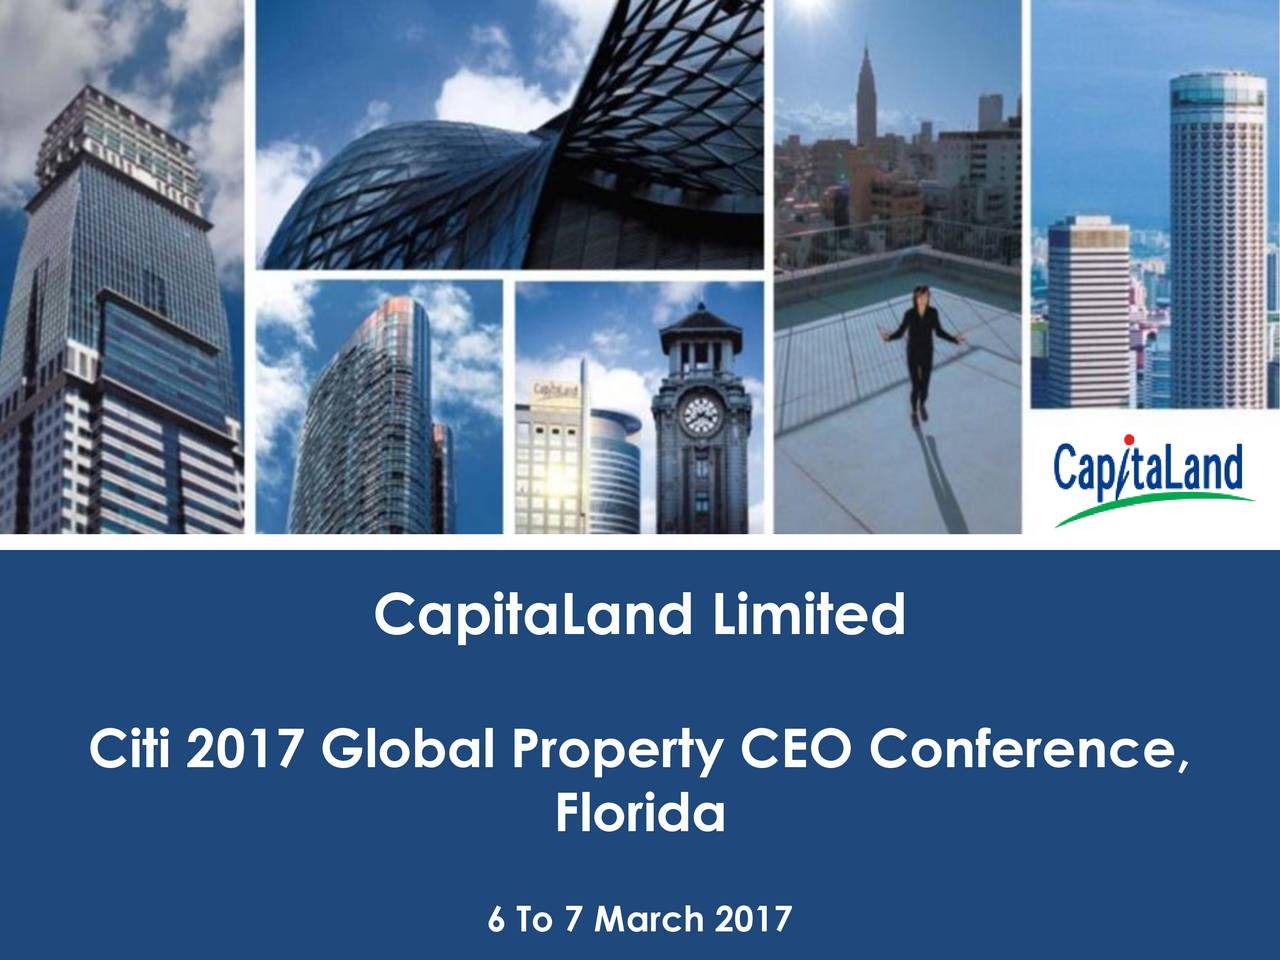 Citi 2017 Global Property CEO Conference, Florida 6 To 7 March 2017